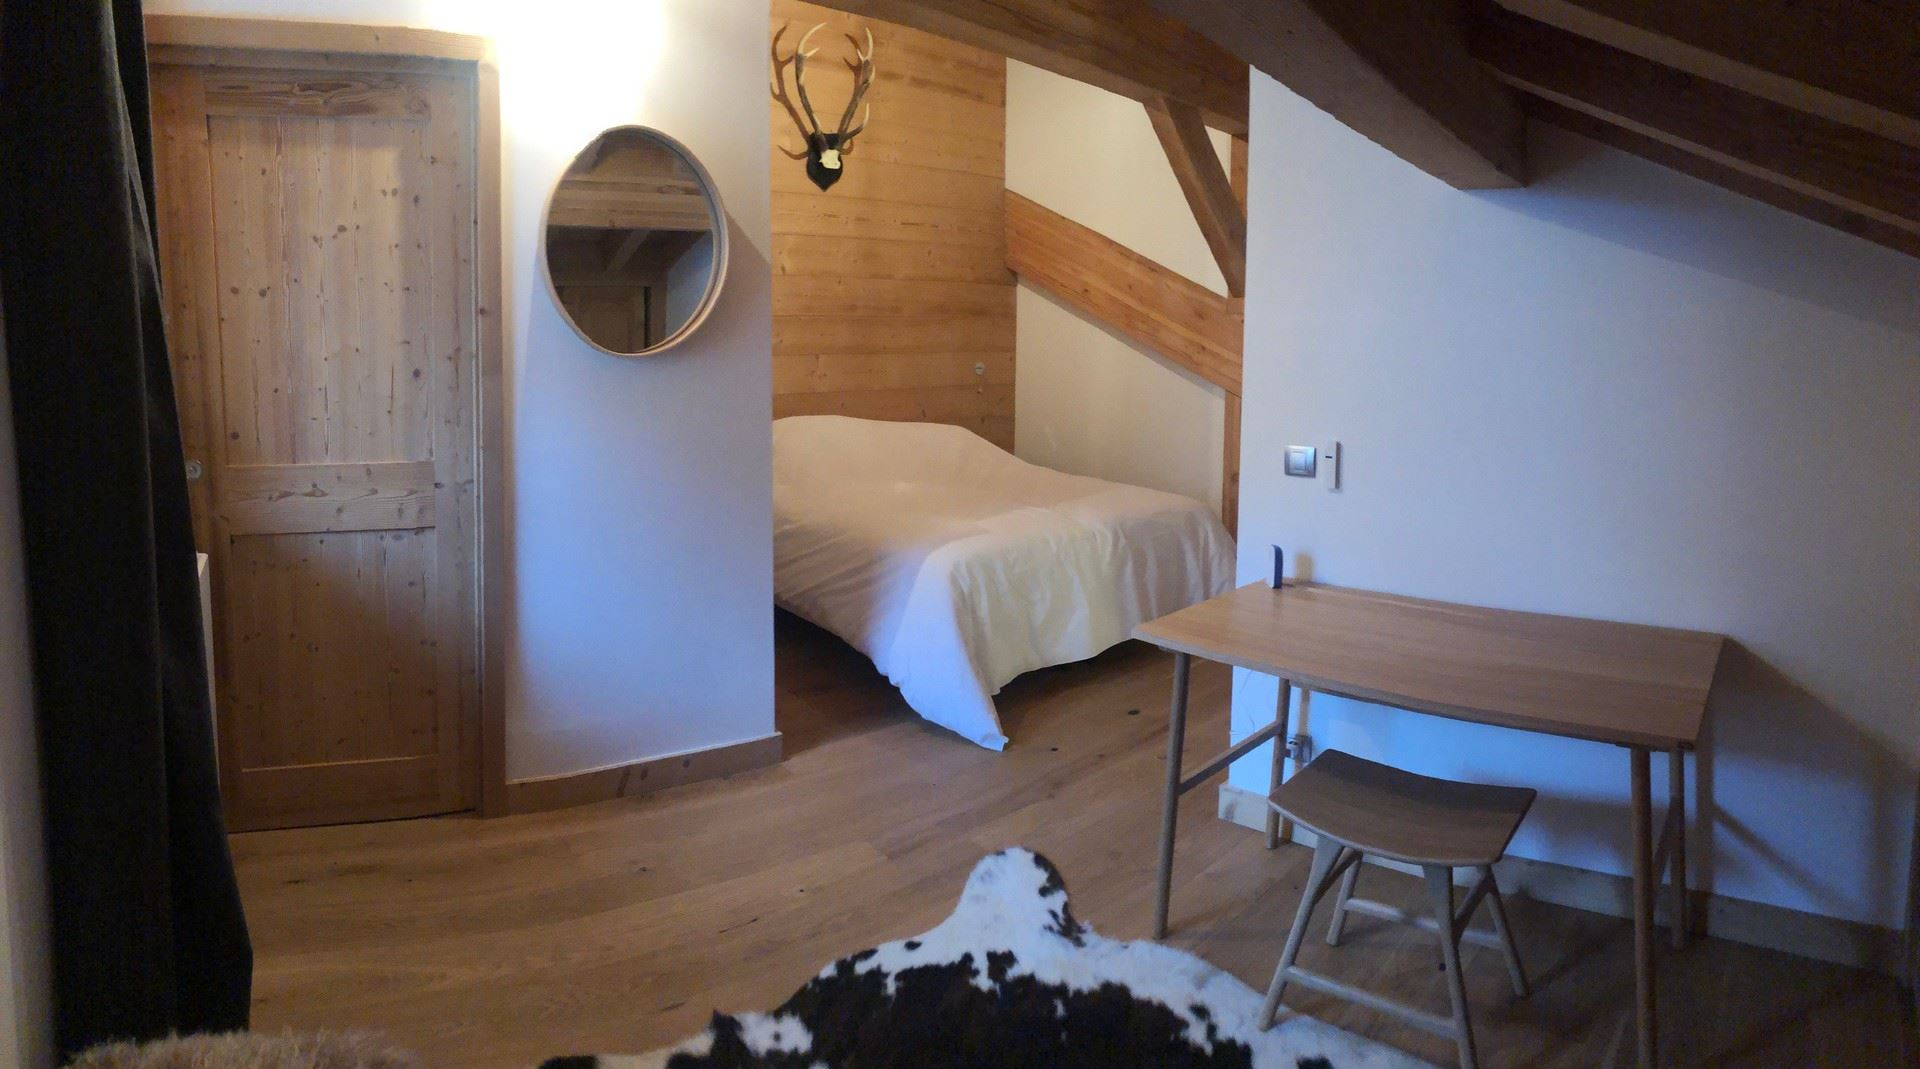 4 Room 6 Pers ski-in ski-out / CASEBLANCHE D17